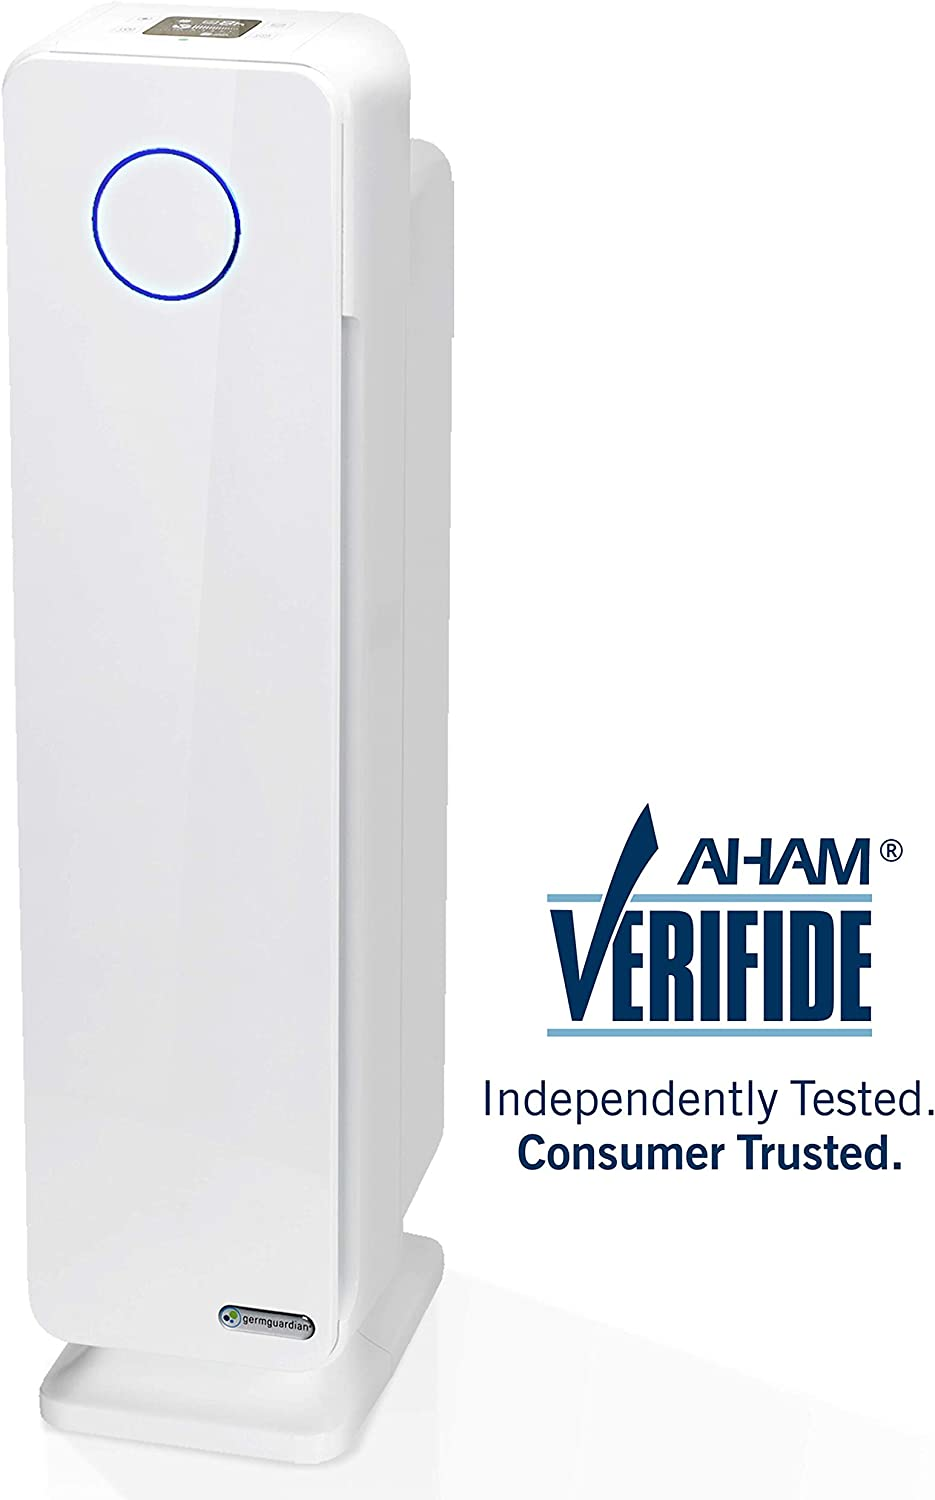 Germ Guardian True HEPA Filter Air Purifier for Home, Office, Large Rooms, Filters Allergies, Pollen, Smoke, Dust, Pet Dander, UVC Sanitizer Eliminates Germs, Mold, Odors, Quiet 28 inch 4-in-1 AC5350W